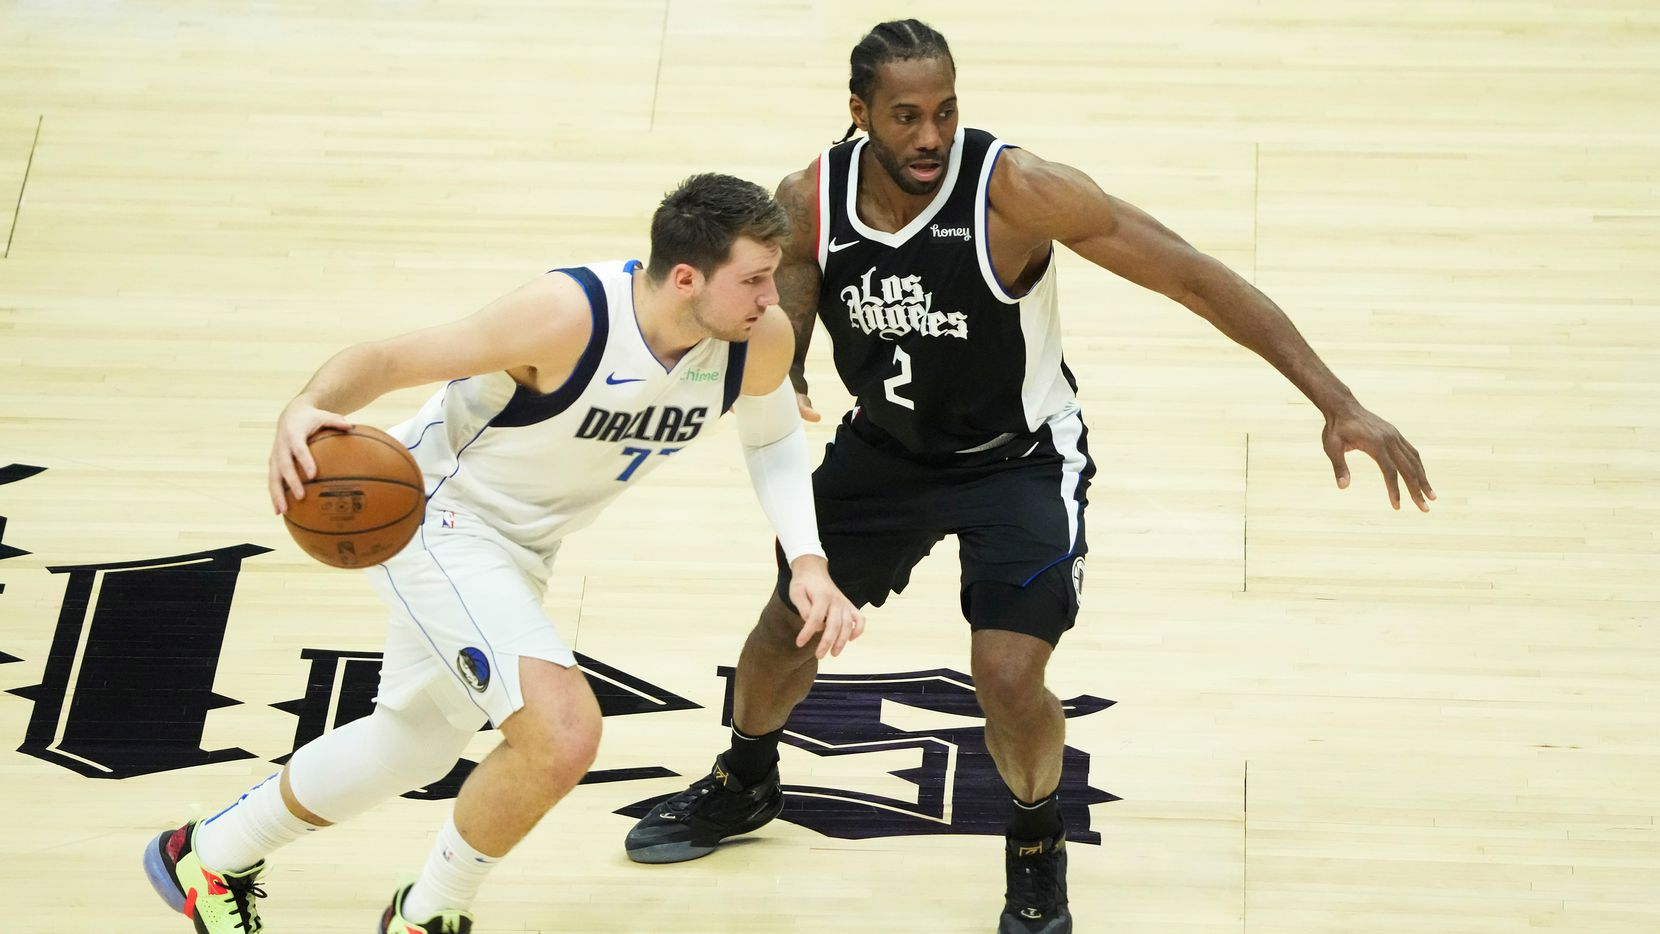 Dallas Mavericks guard Luka Doncic (77) works against LA Clippers forward Kawhi Leonard (2) during the first quarter of Game 7 of an NBA playoff series at the Staples Center on Sunday, June 6, 2021, in Los Angeles.